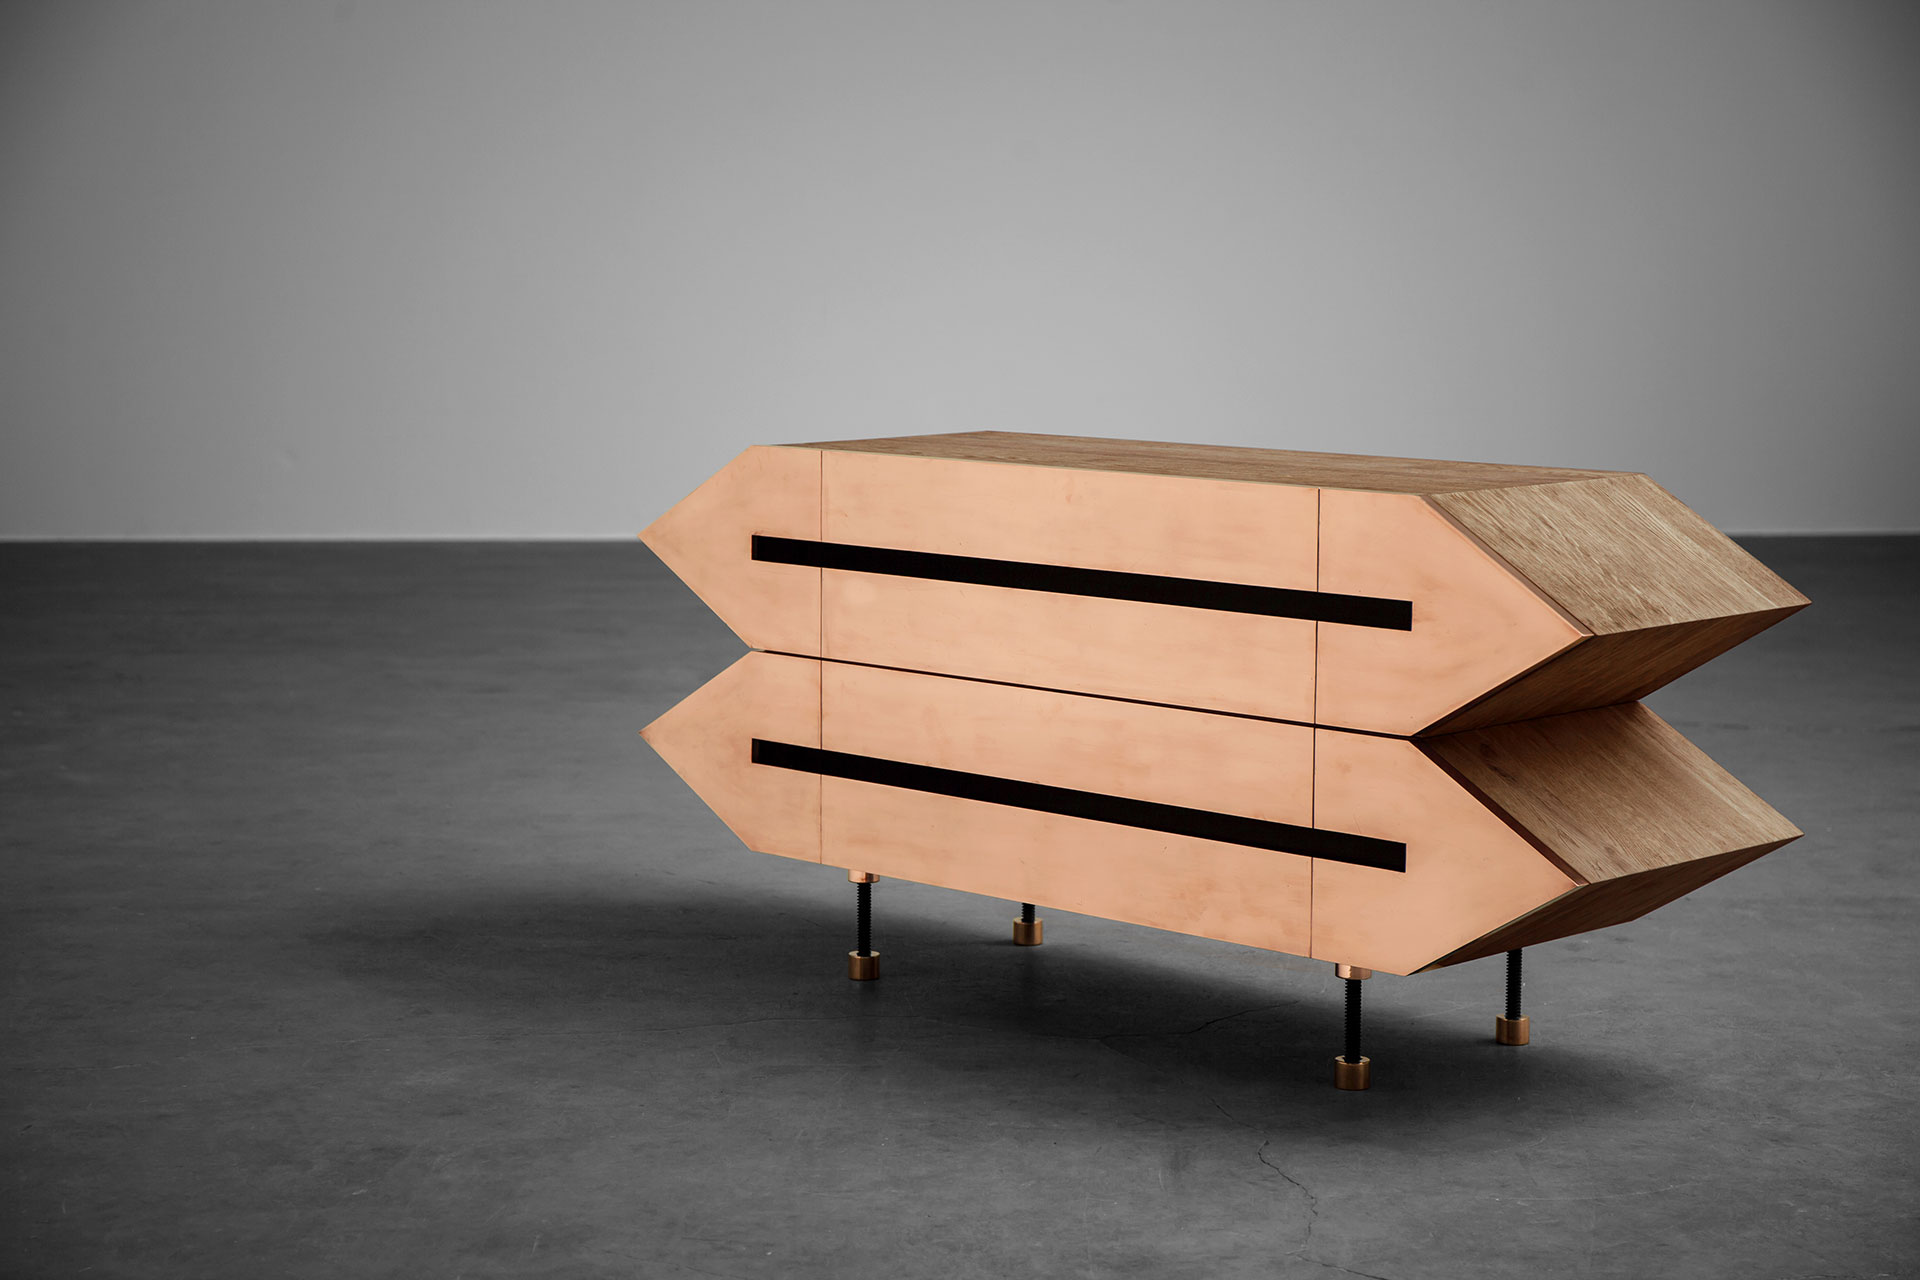 Conceptual design sideboard in brass and solid wood